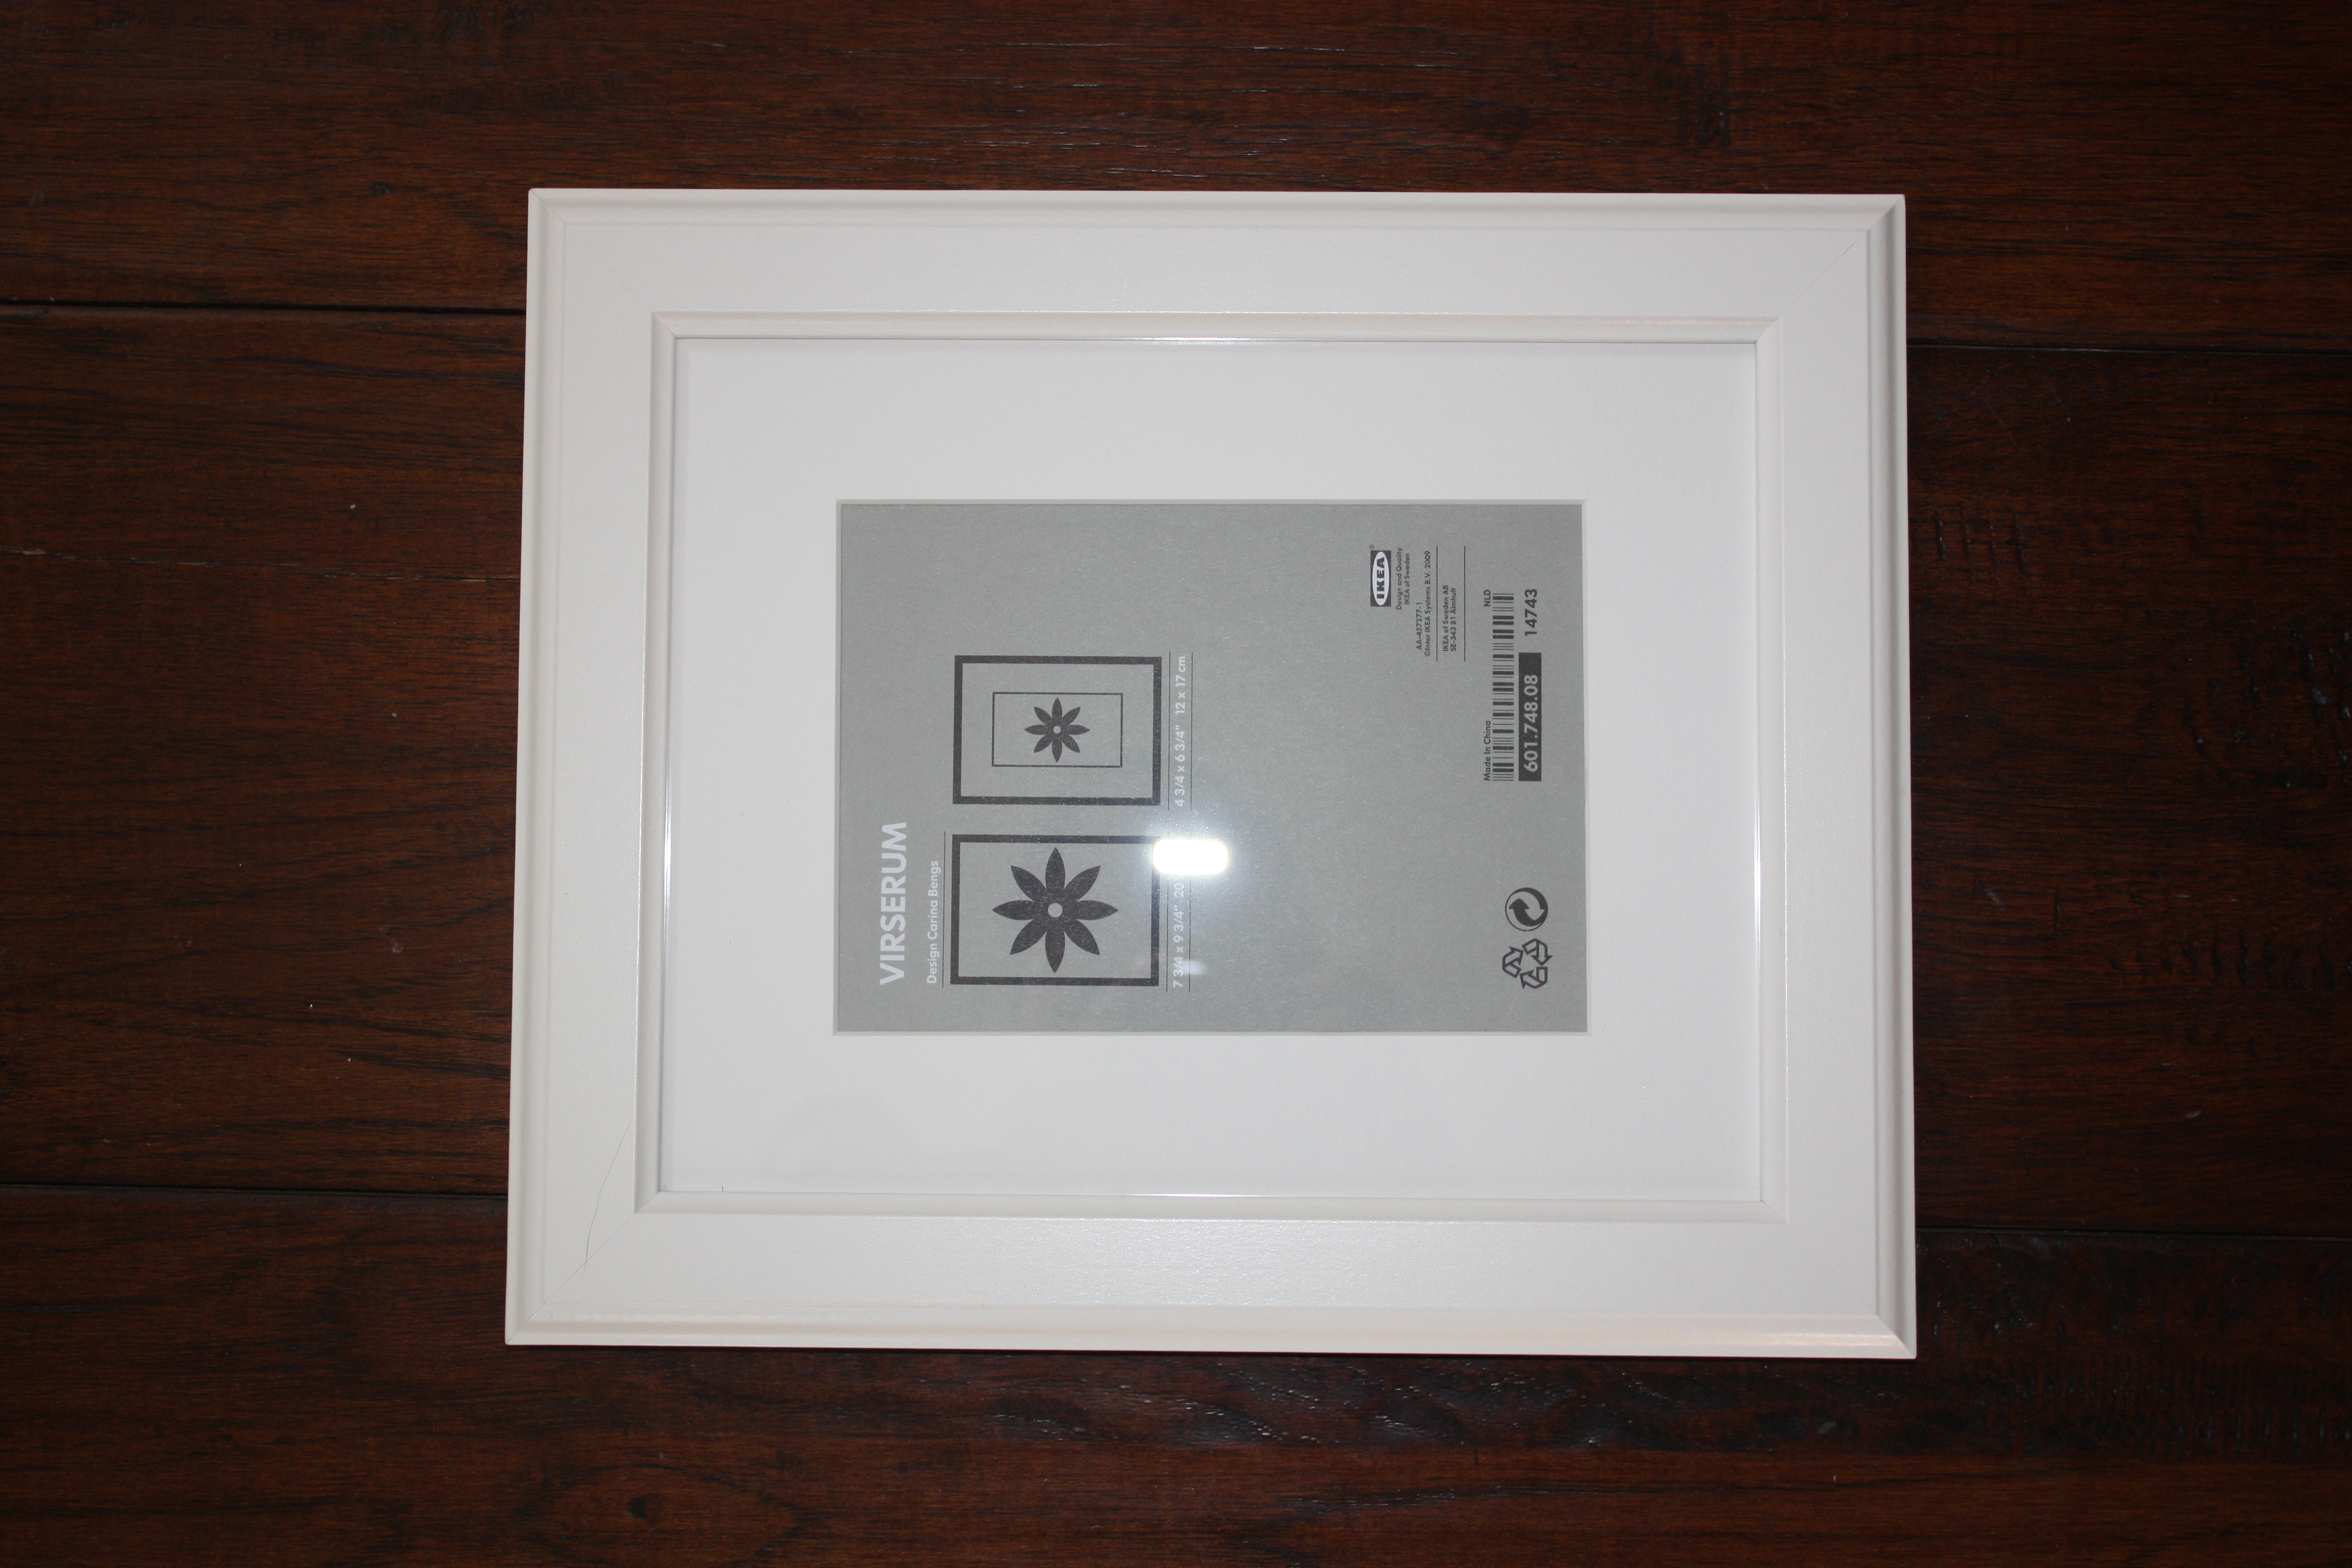 1 we started with three inexpensive frames from ikea less than 10 per frame to create